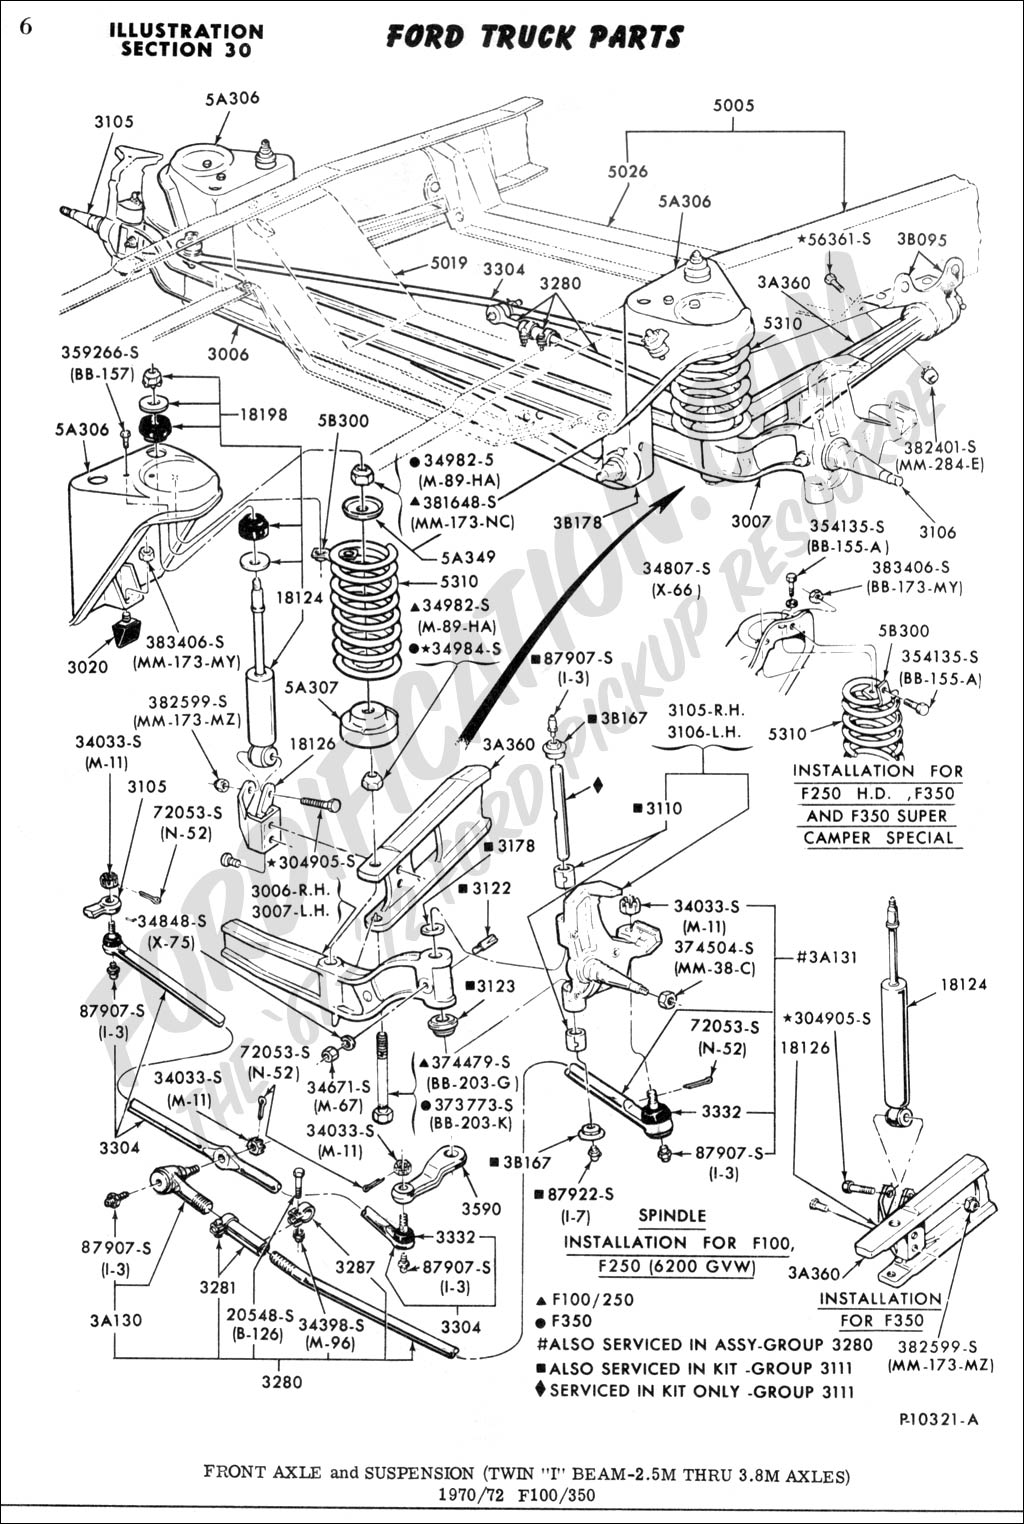 Ford F150 Front Suspension Diagram